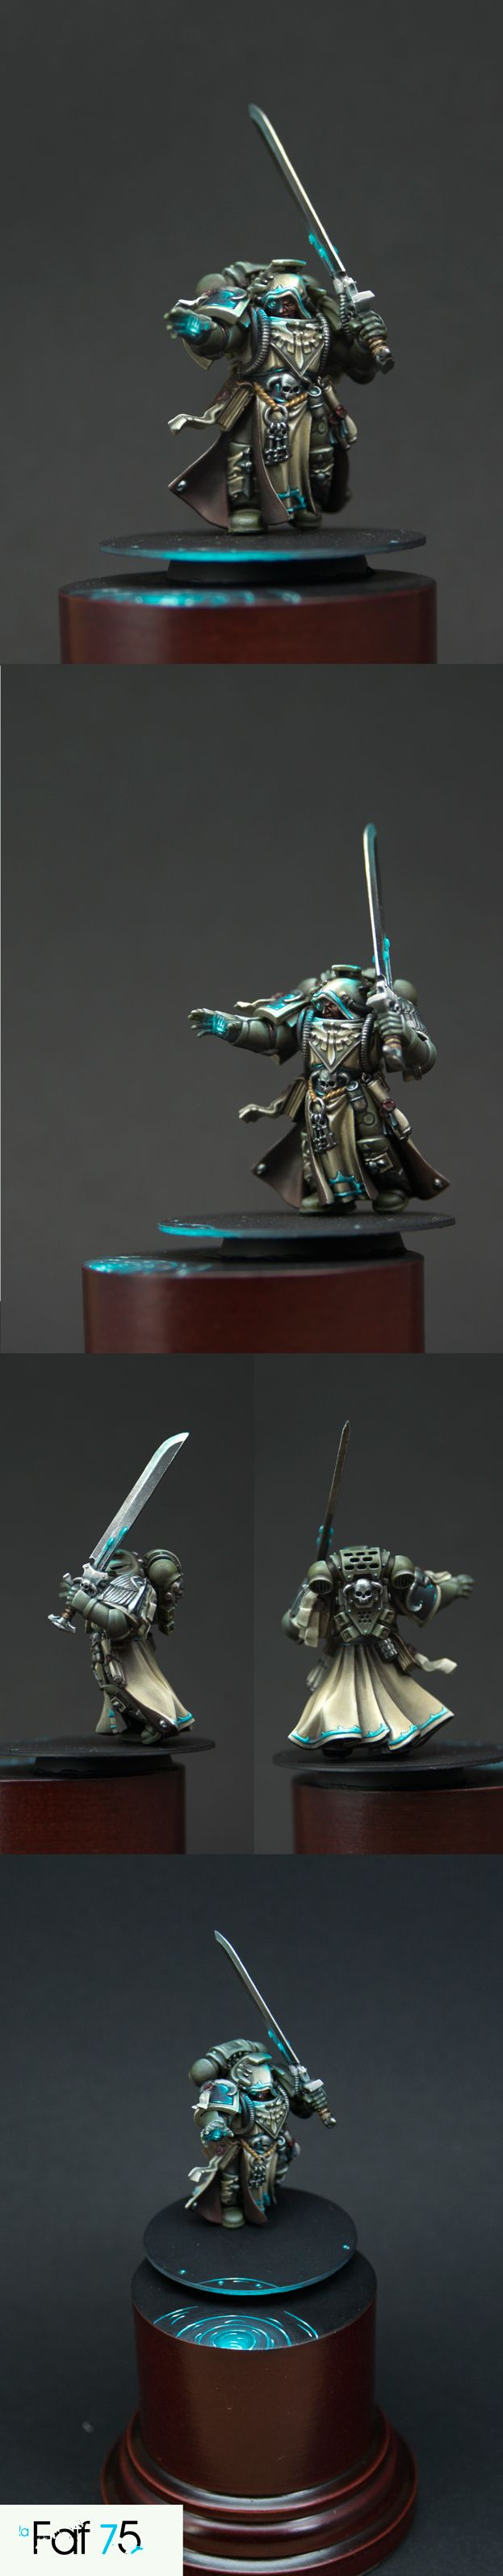 Psyker Dark Angel  Manufacturer: Games Workshop  by Raphael.ch